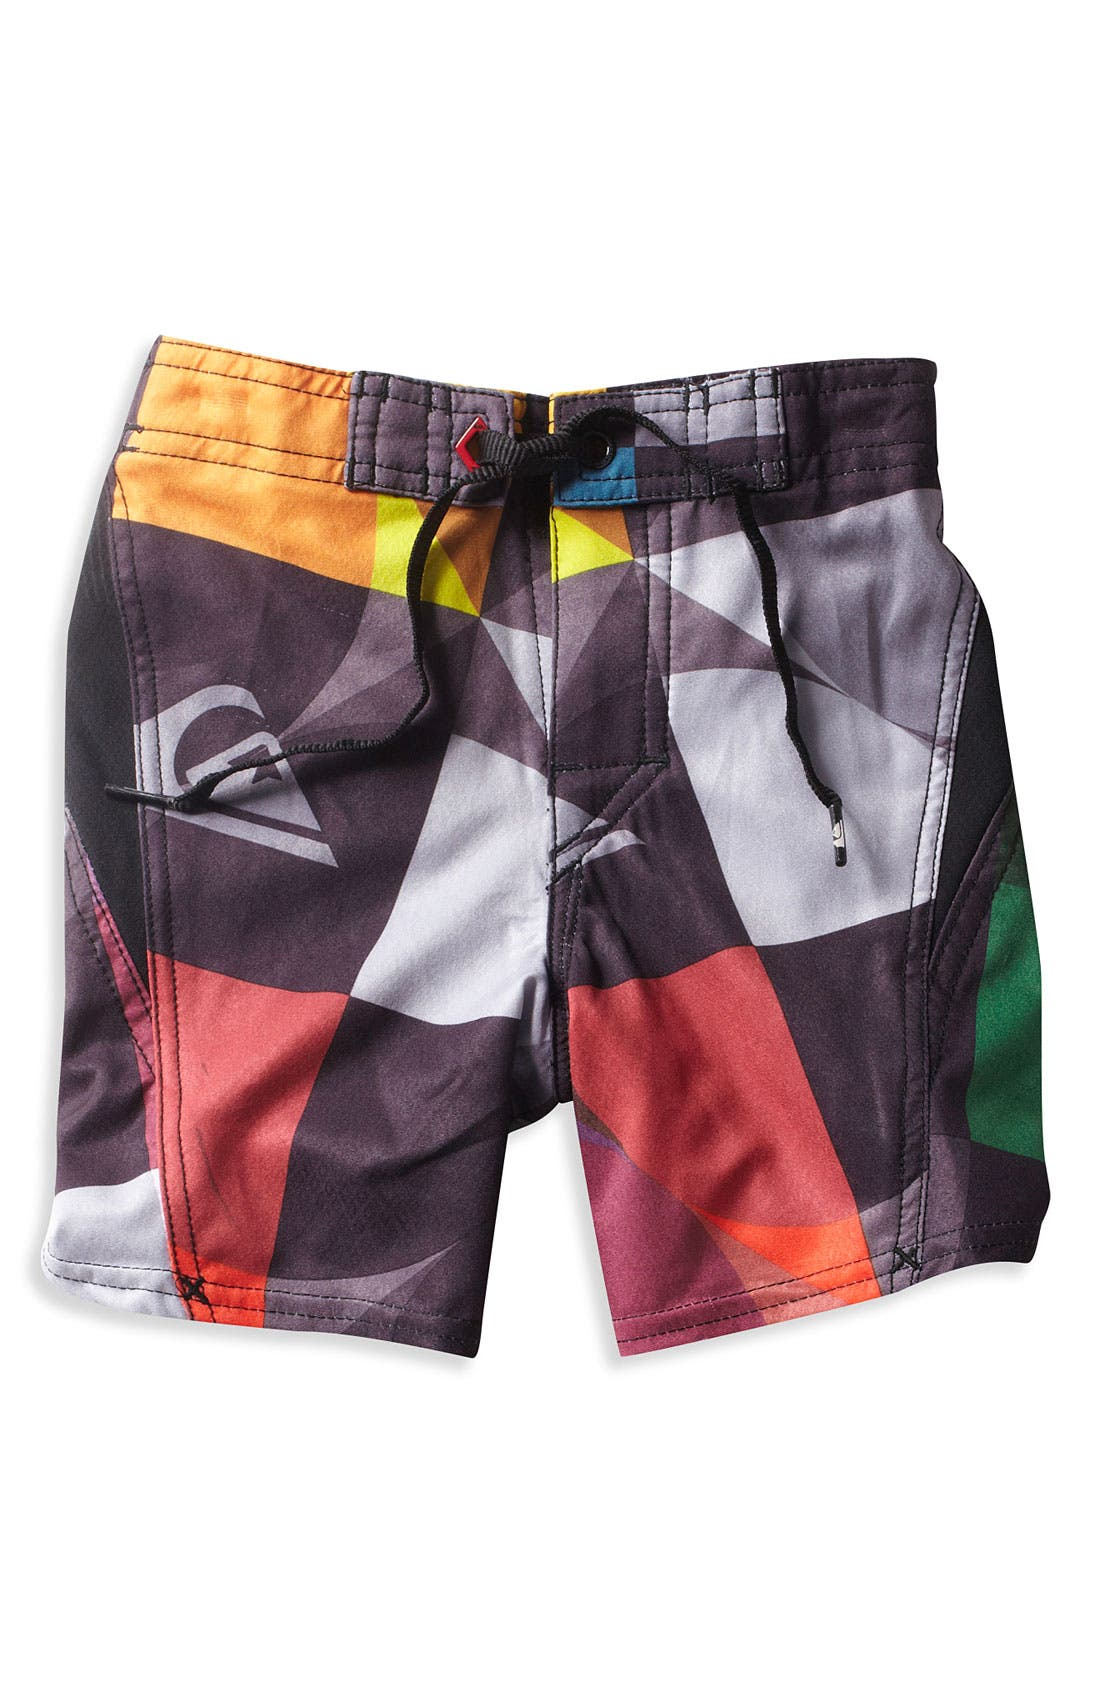 Alternate Image 1 Selected - Quiksilver 'Cypher Buzzed' Board Shorts (Toddler)